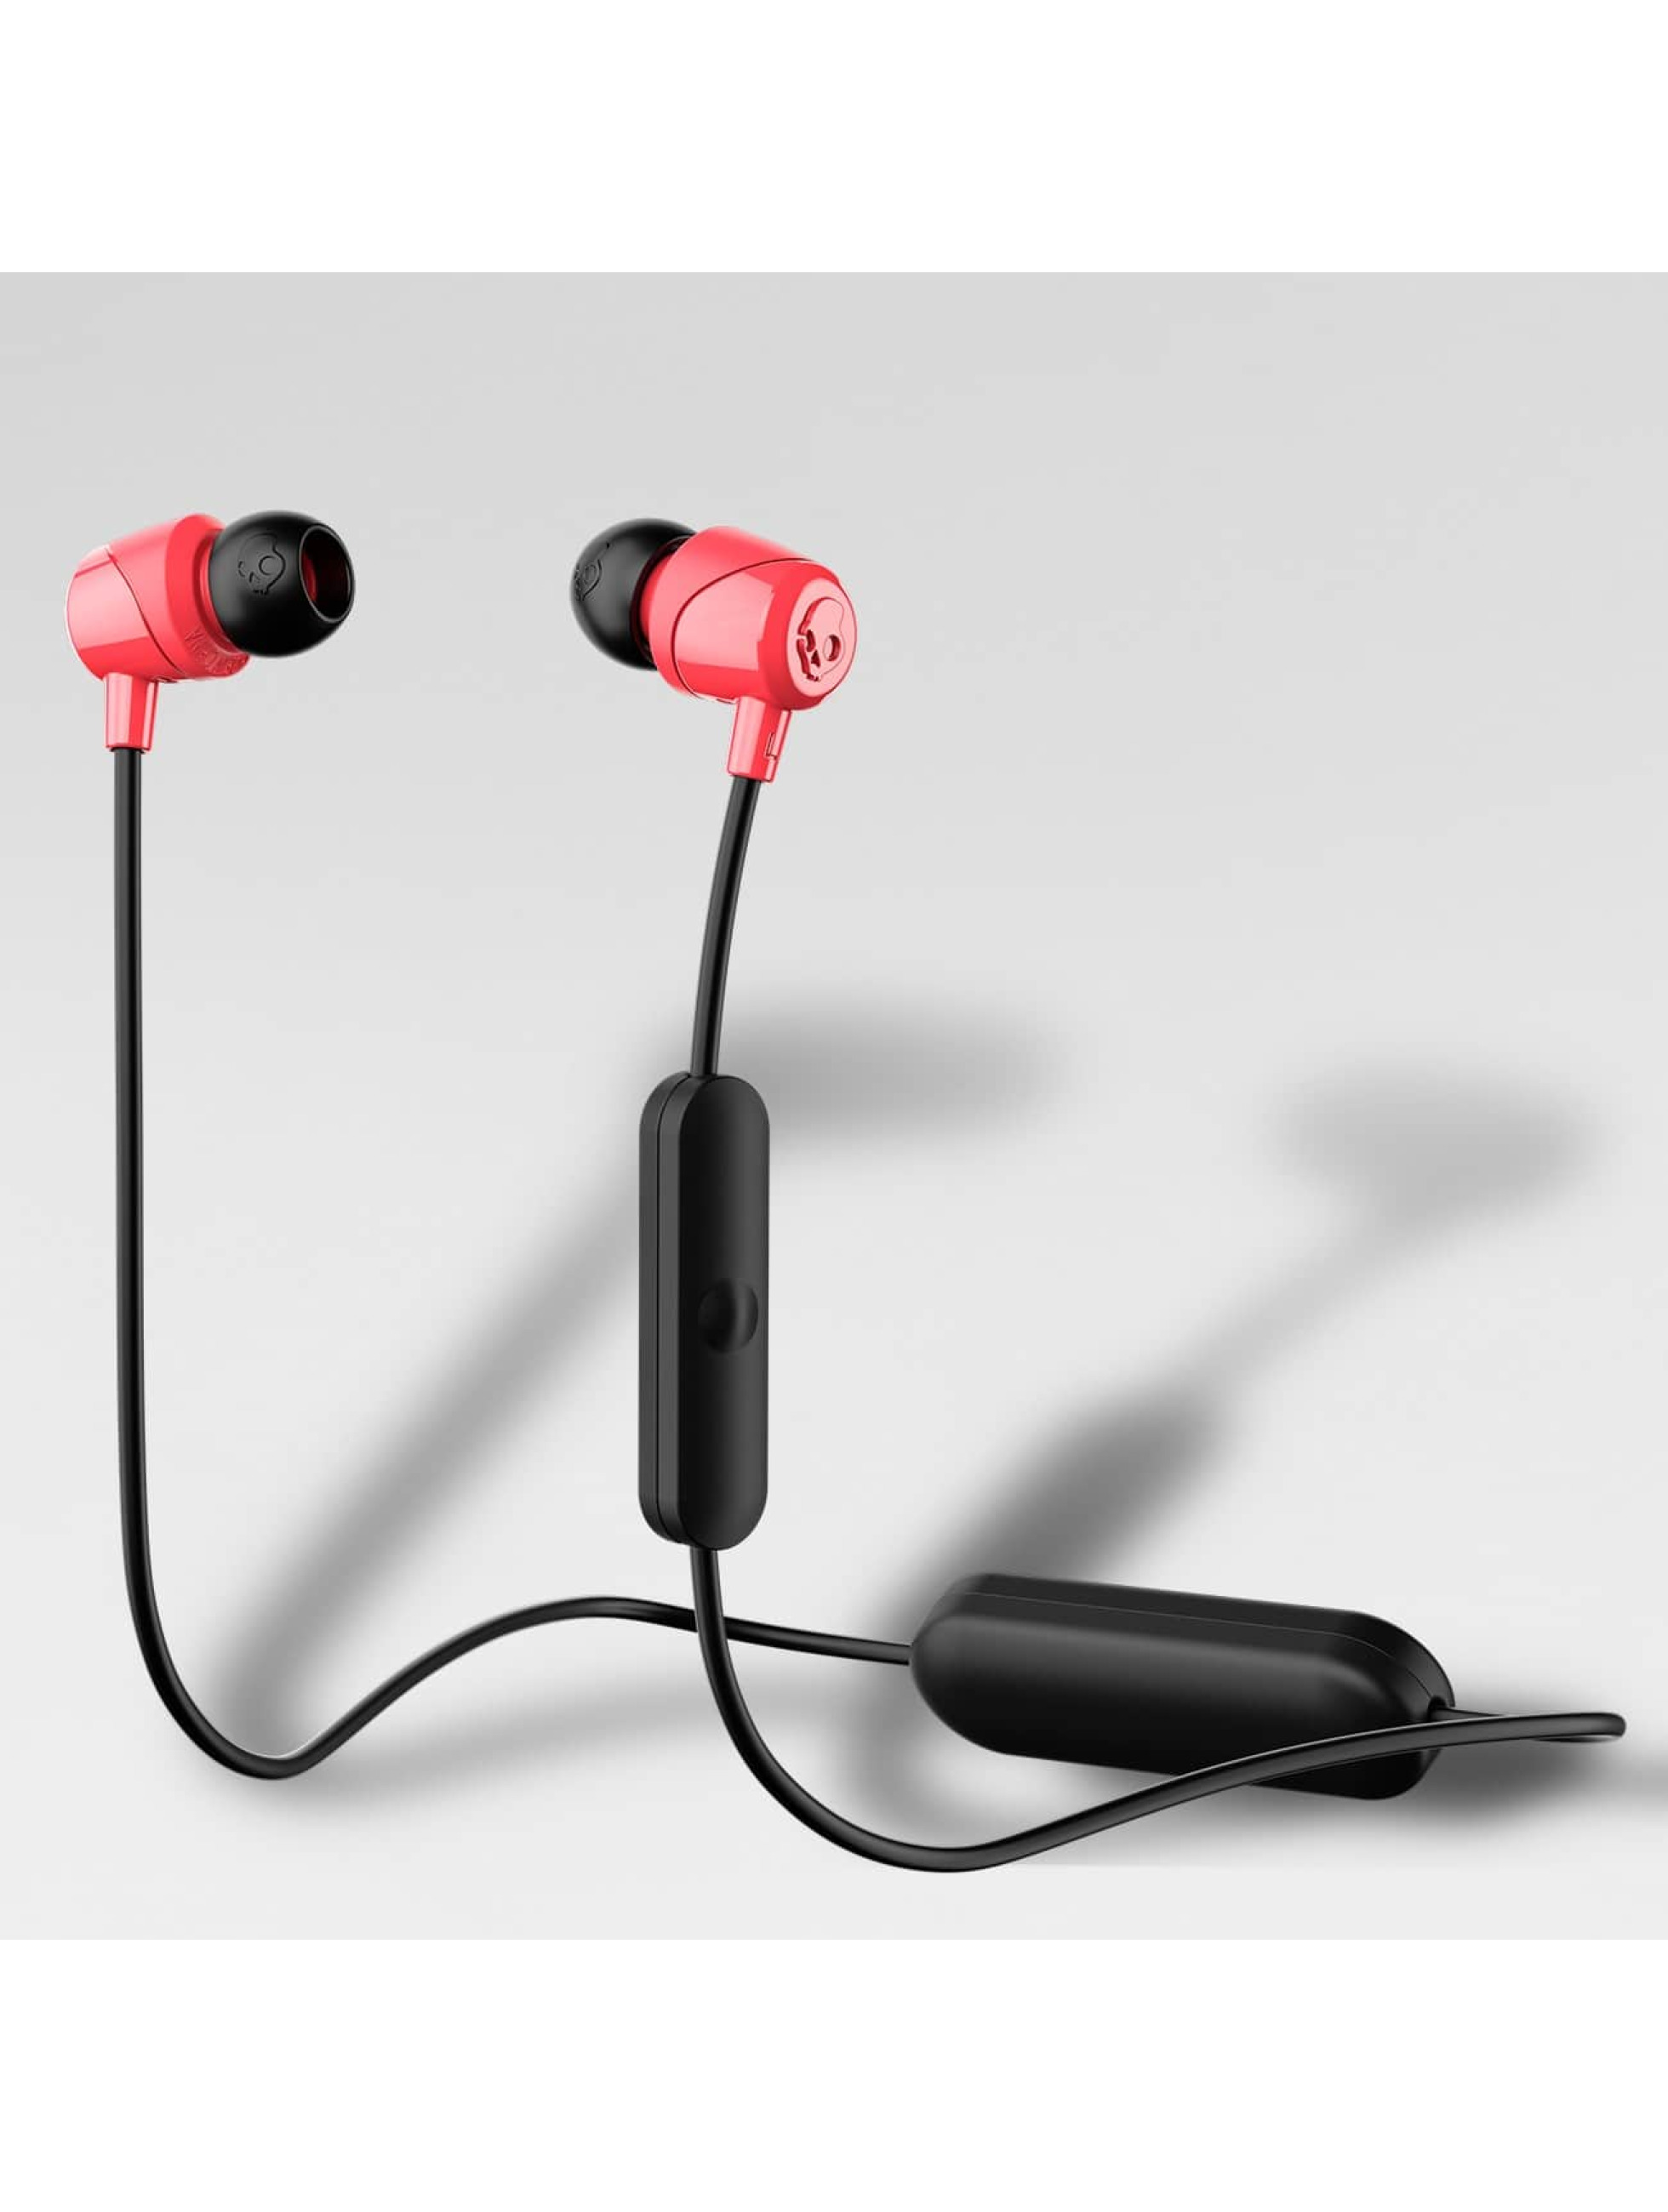 Nike wireless earphones - wireless earphones red